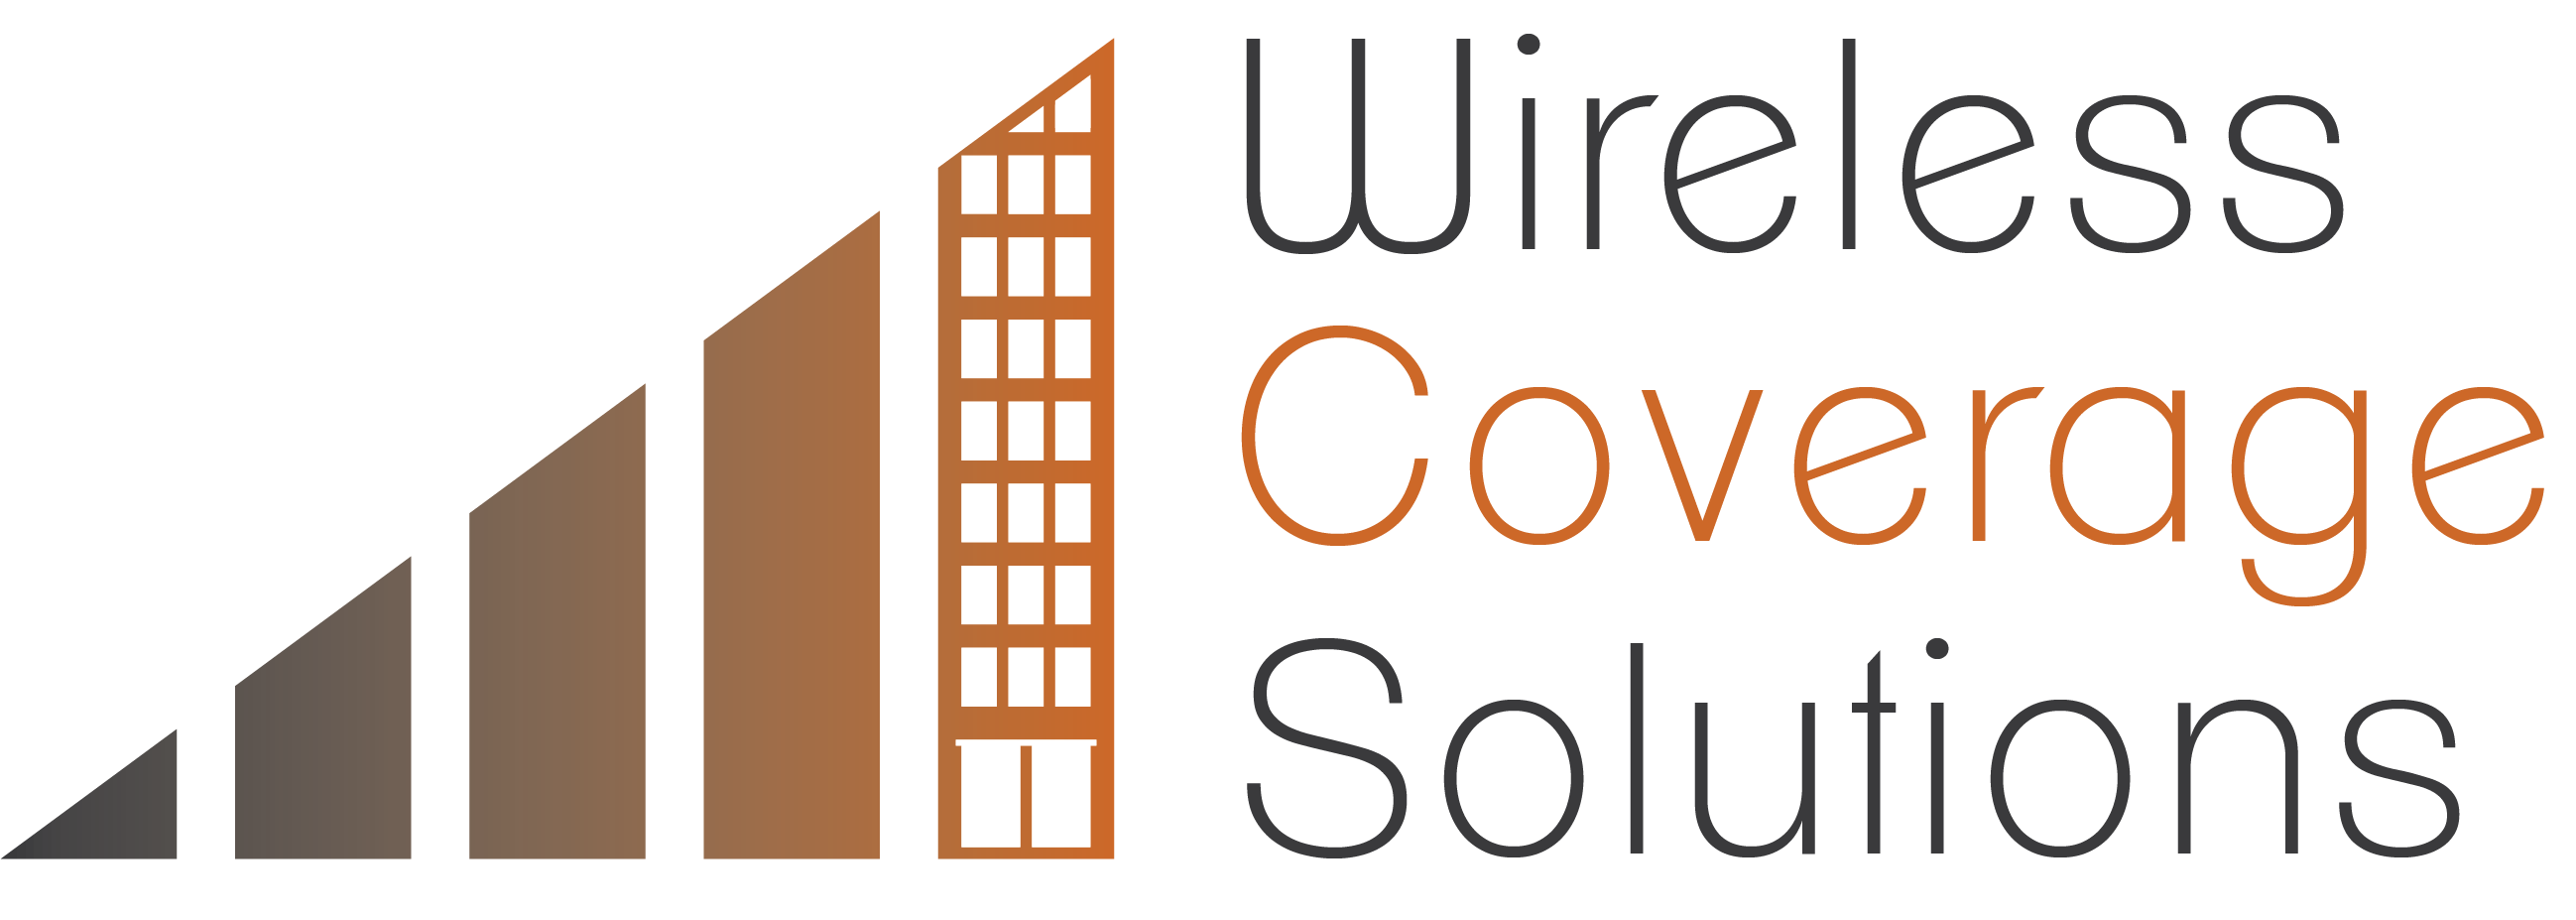 contact Wireless Coverage Solutions, Contact